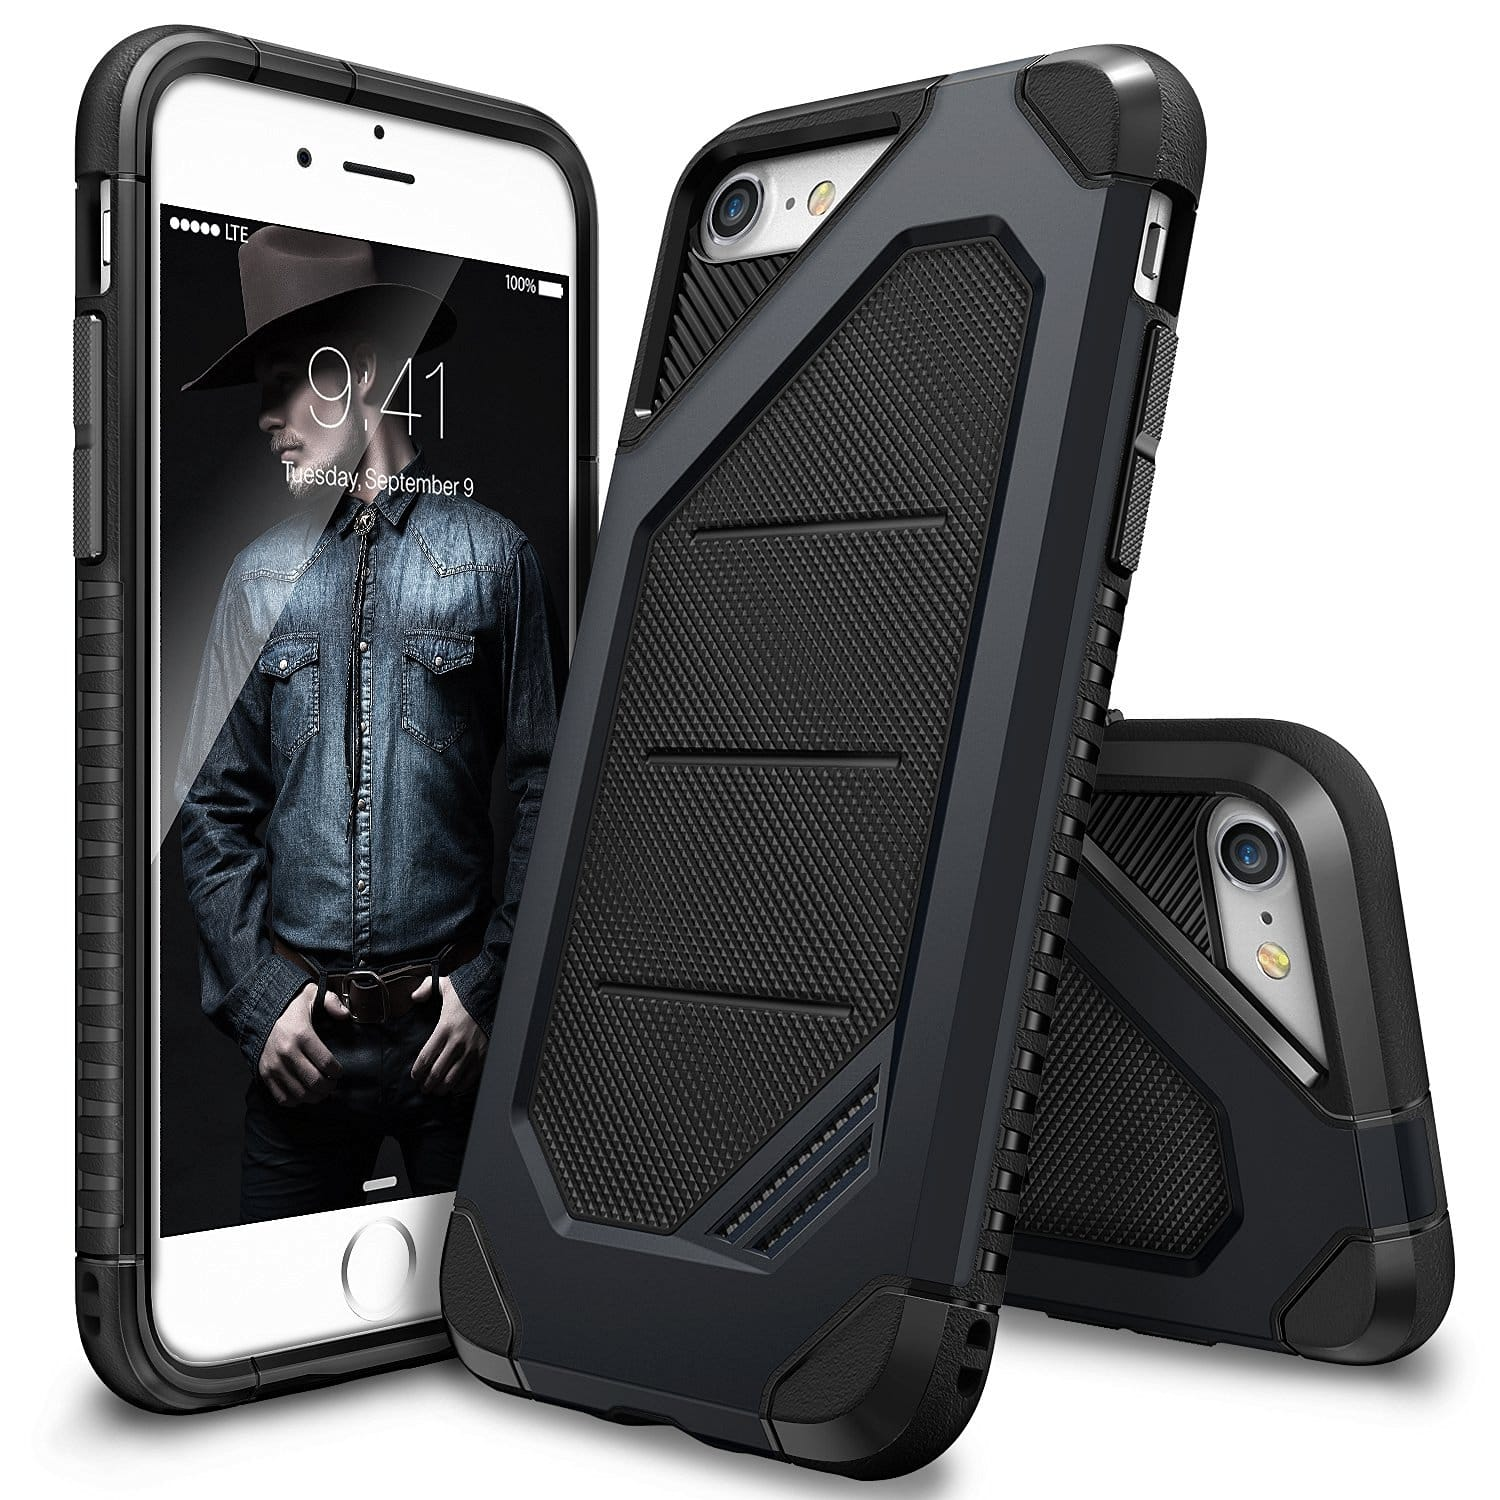 Ringke Cases for iPhone 7, iPhone 7 Plus and Galaxy Note 7 from $1.99 + Free Shipping